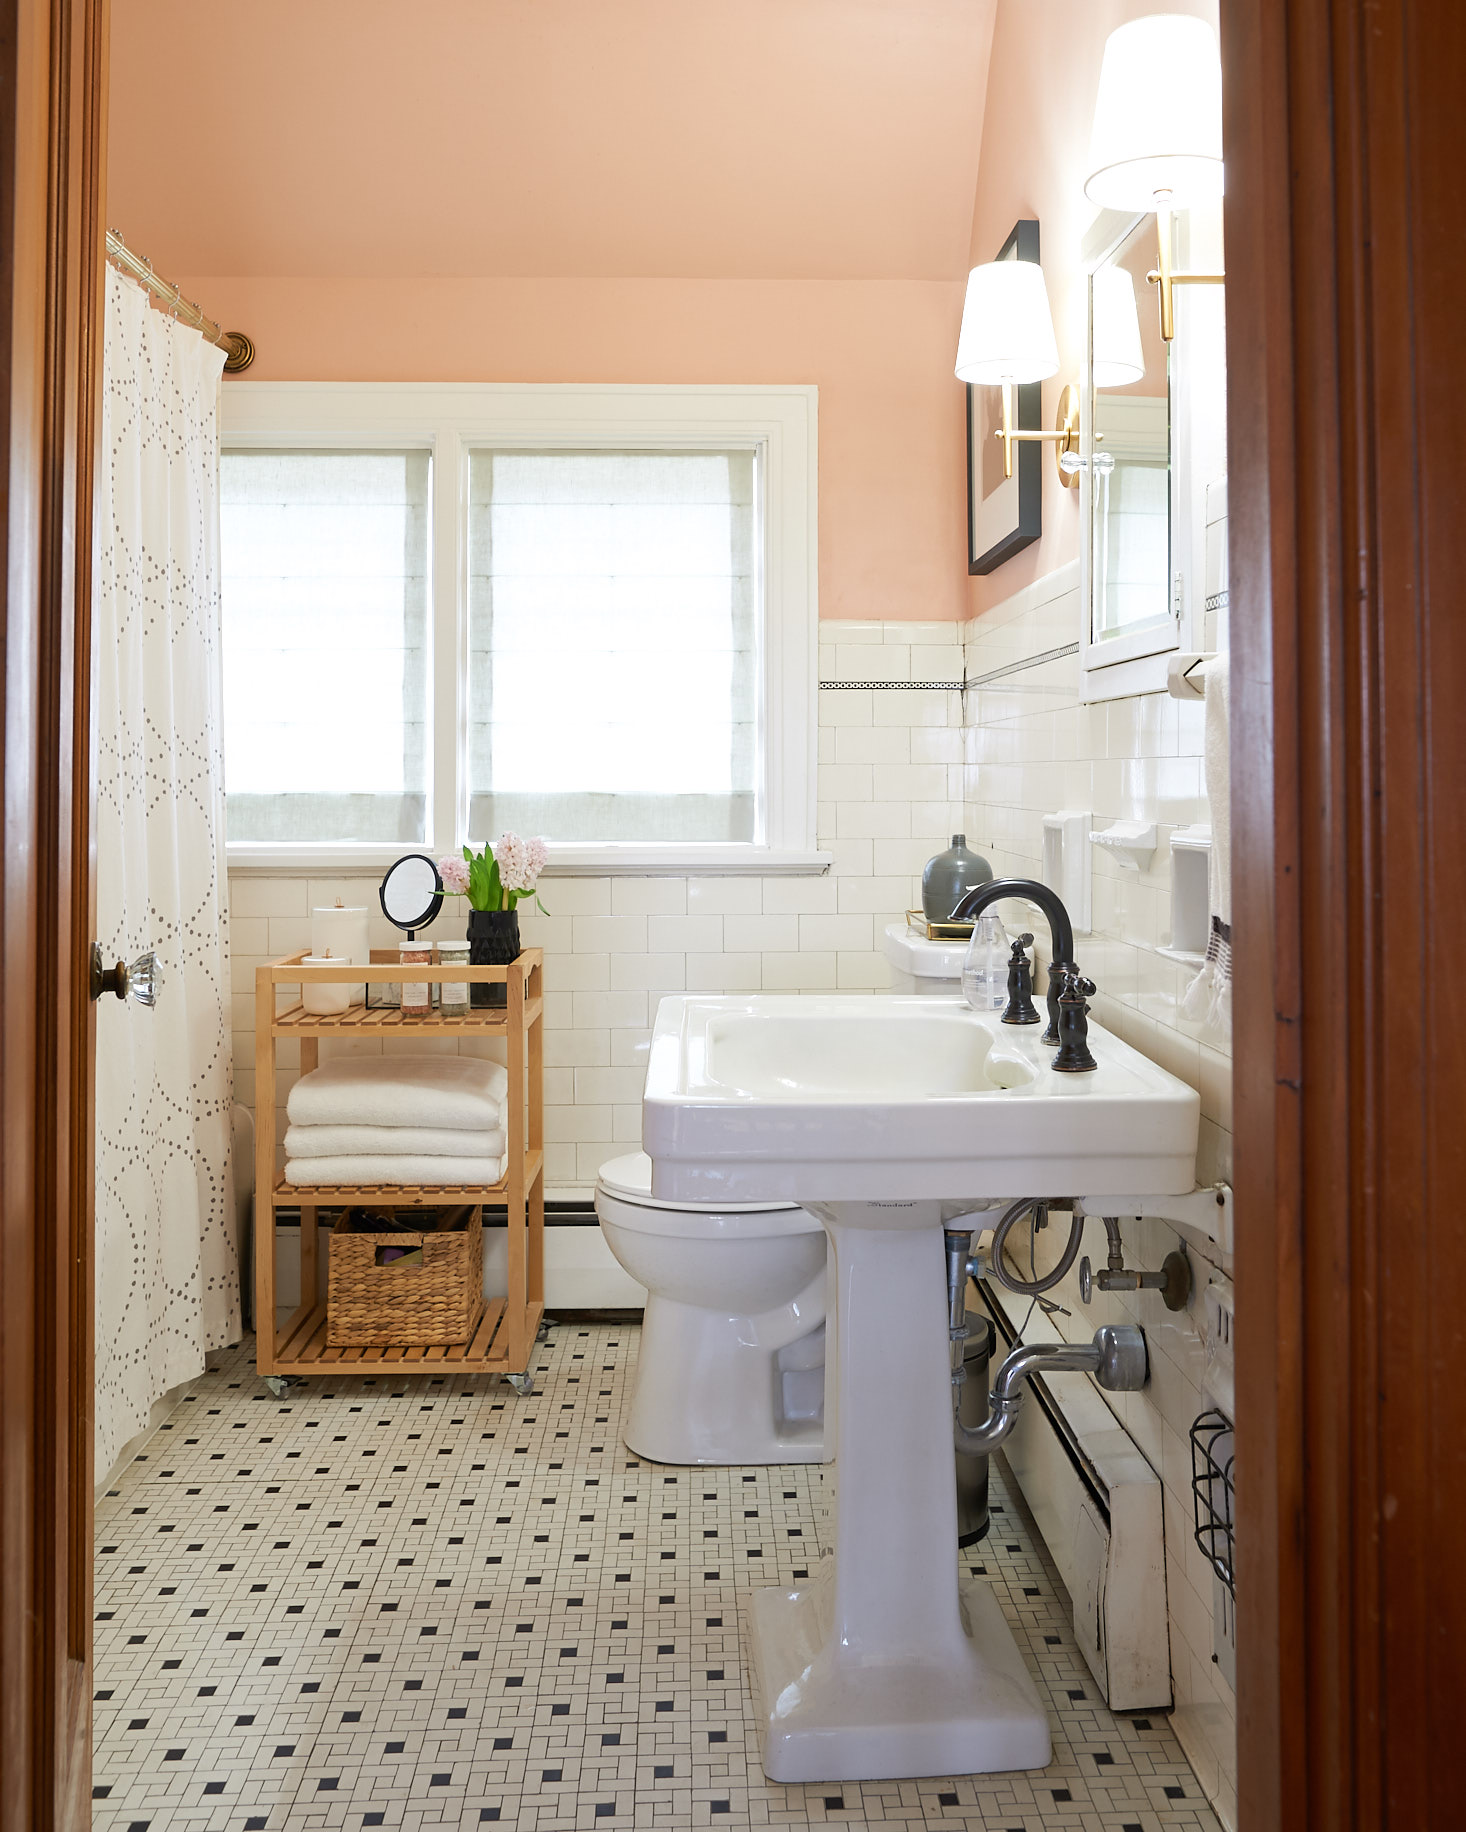 Blush bathroom with shades drawn lit by sconces